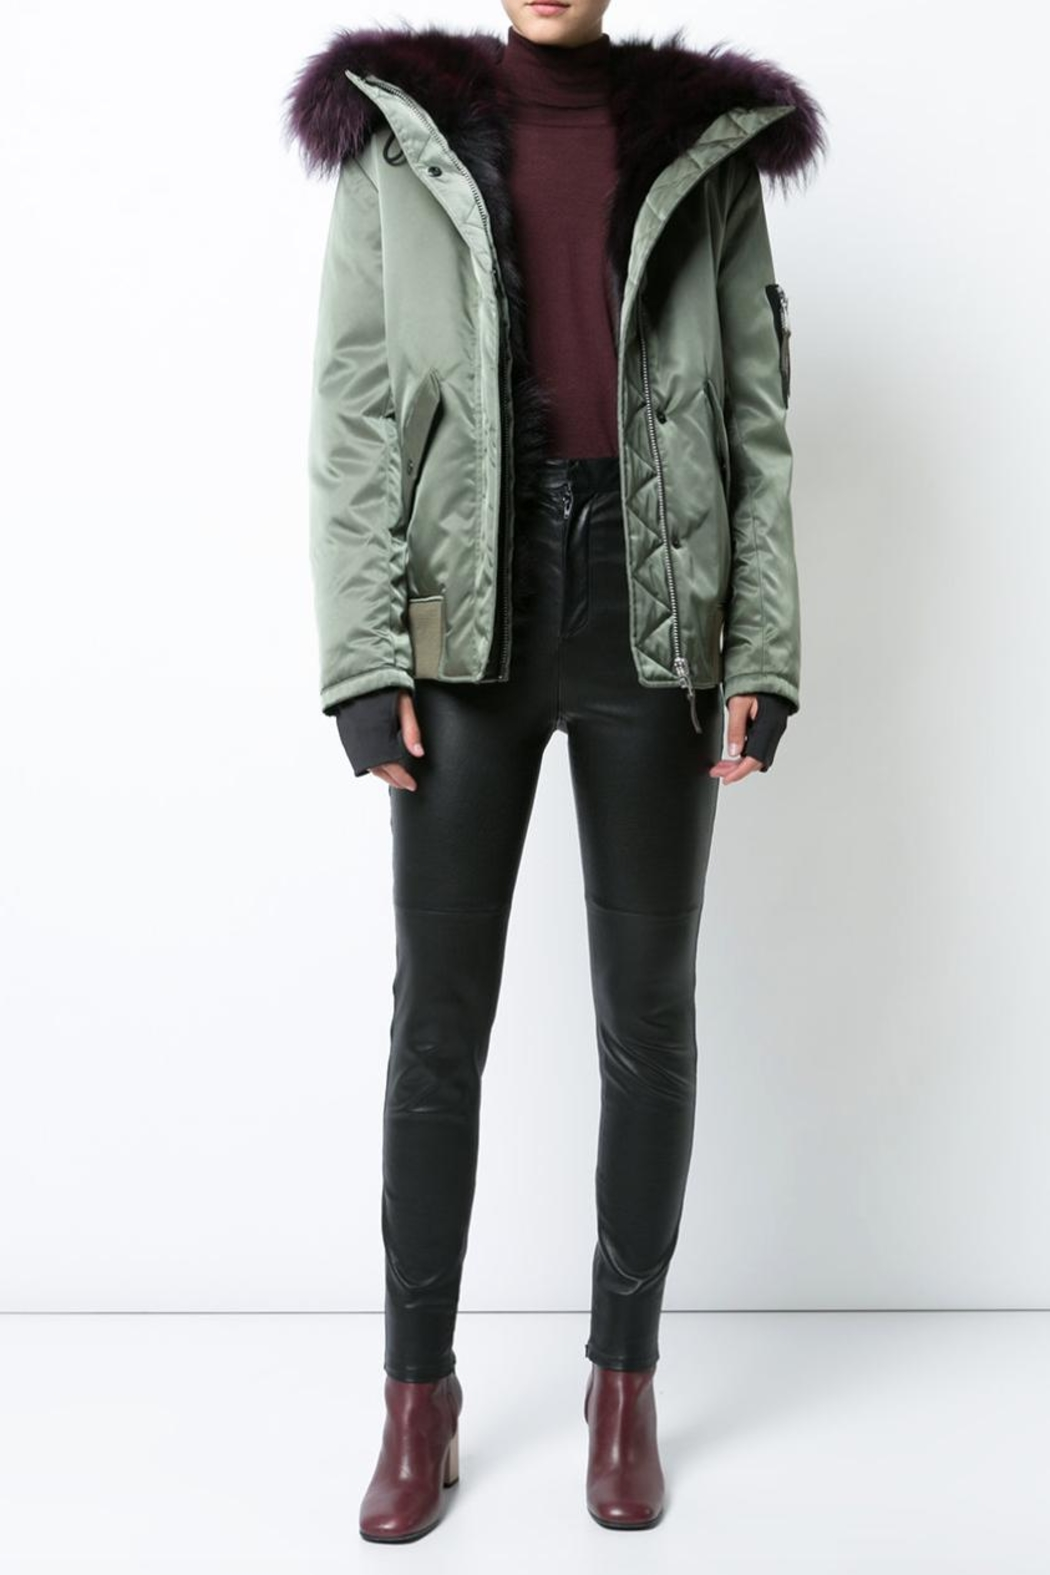 84bad381302 Sam. Luxe Sloane Bomber from New Jersey by The House — Shoptiques